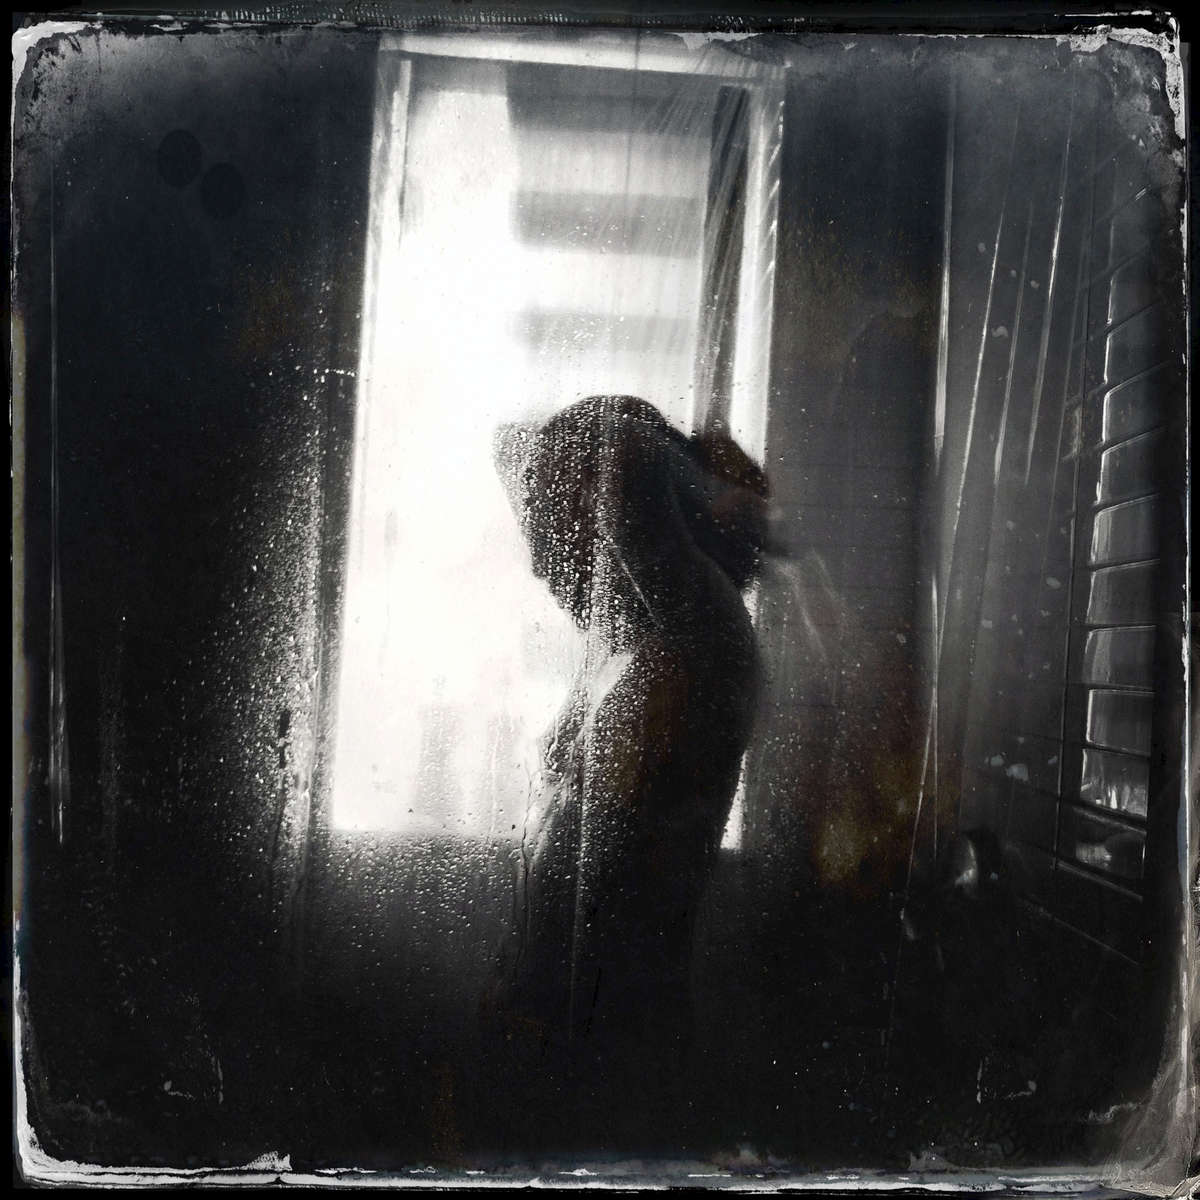 Silhouette in shower -- Harlem, Sep. 2013.